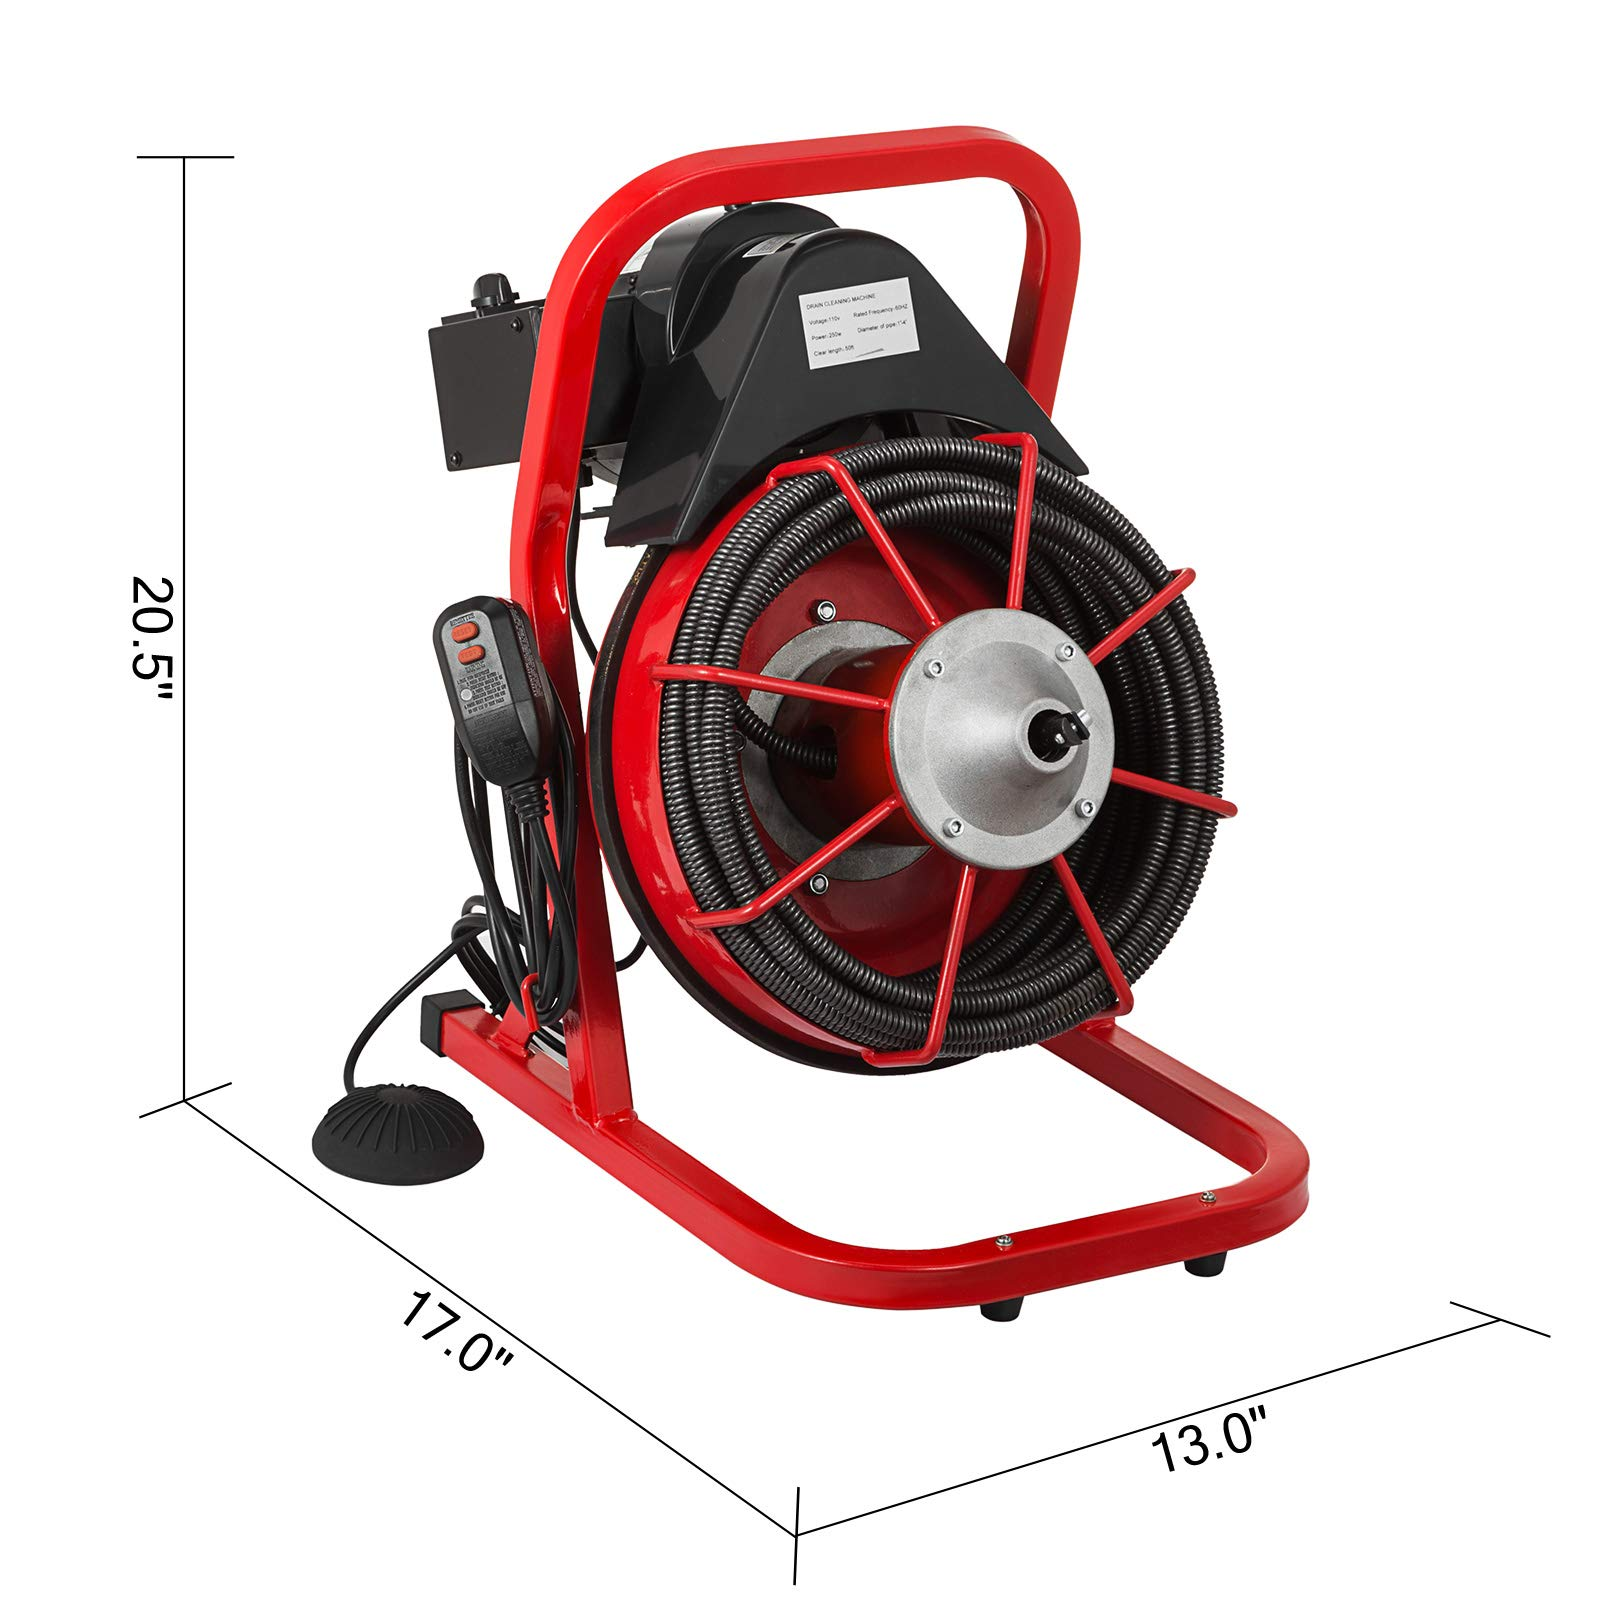 VEVOR 50 Ft x 1/2 Inch Drain Cleaner Machine Best fit 1''(25mm) to 4''(100mm) Pipes Drain Cleaning Machine Portable Drain Auger Cleaner with 4 Cutters Electric Drain Auger Plumbing Tool (50Ft x 1/2In) by VEVOR (Image #8)